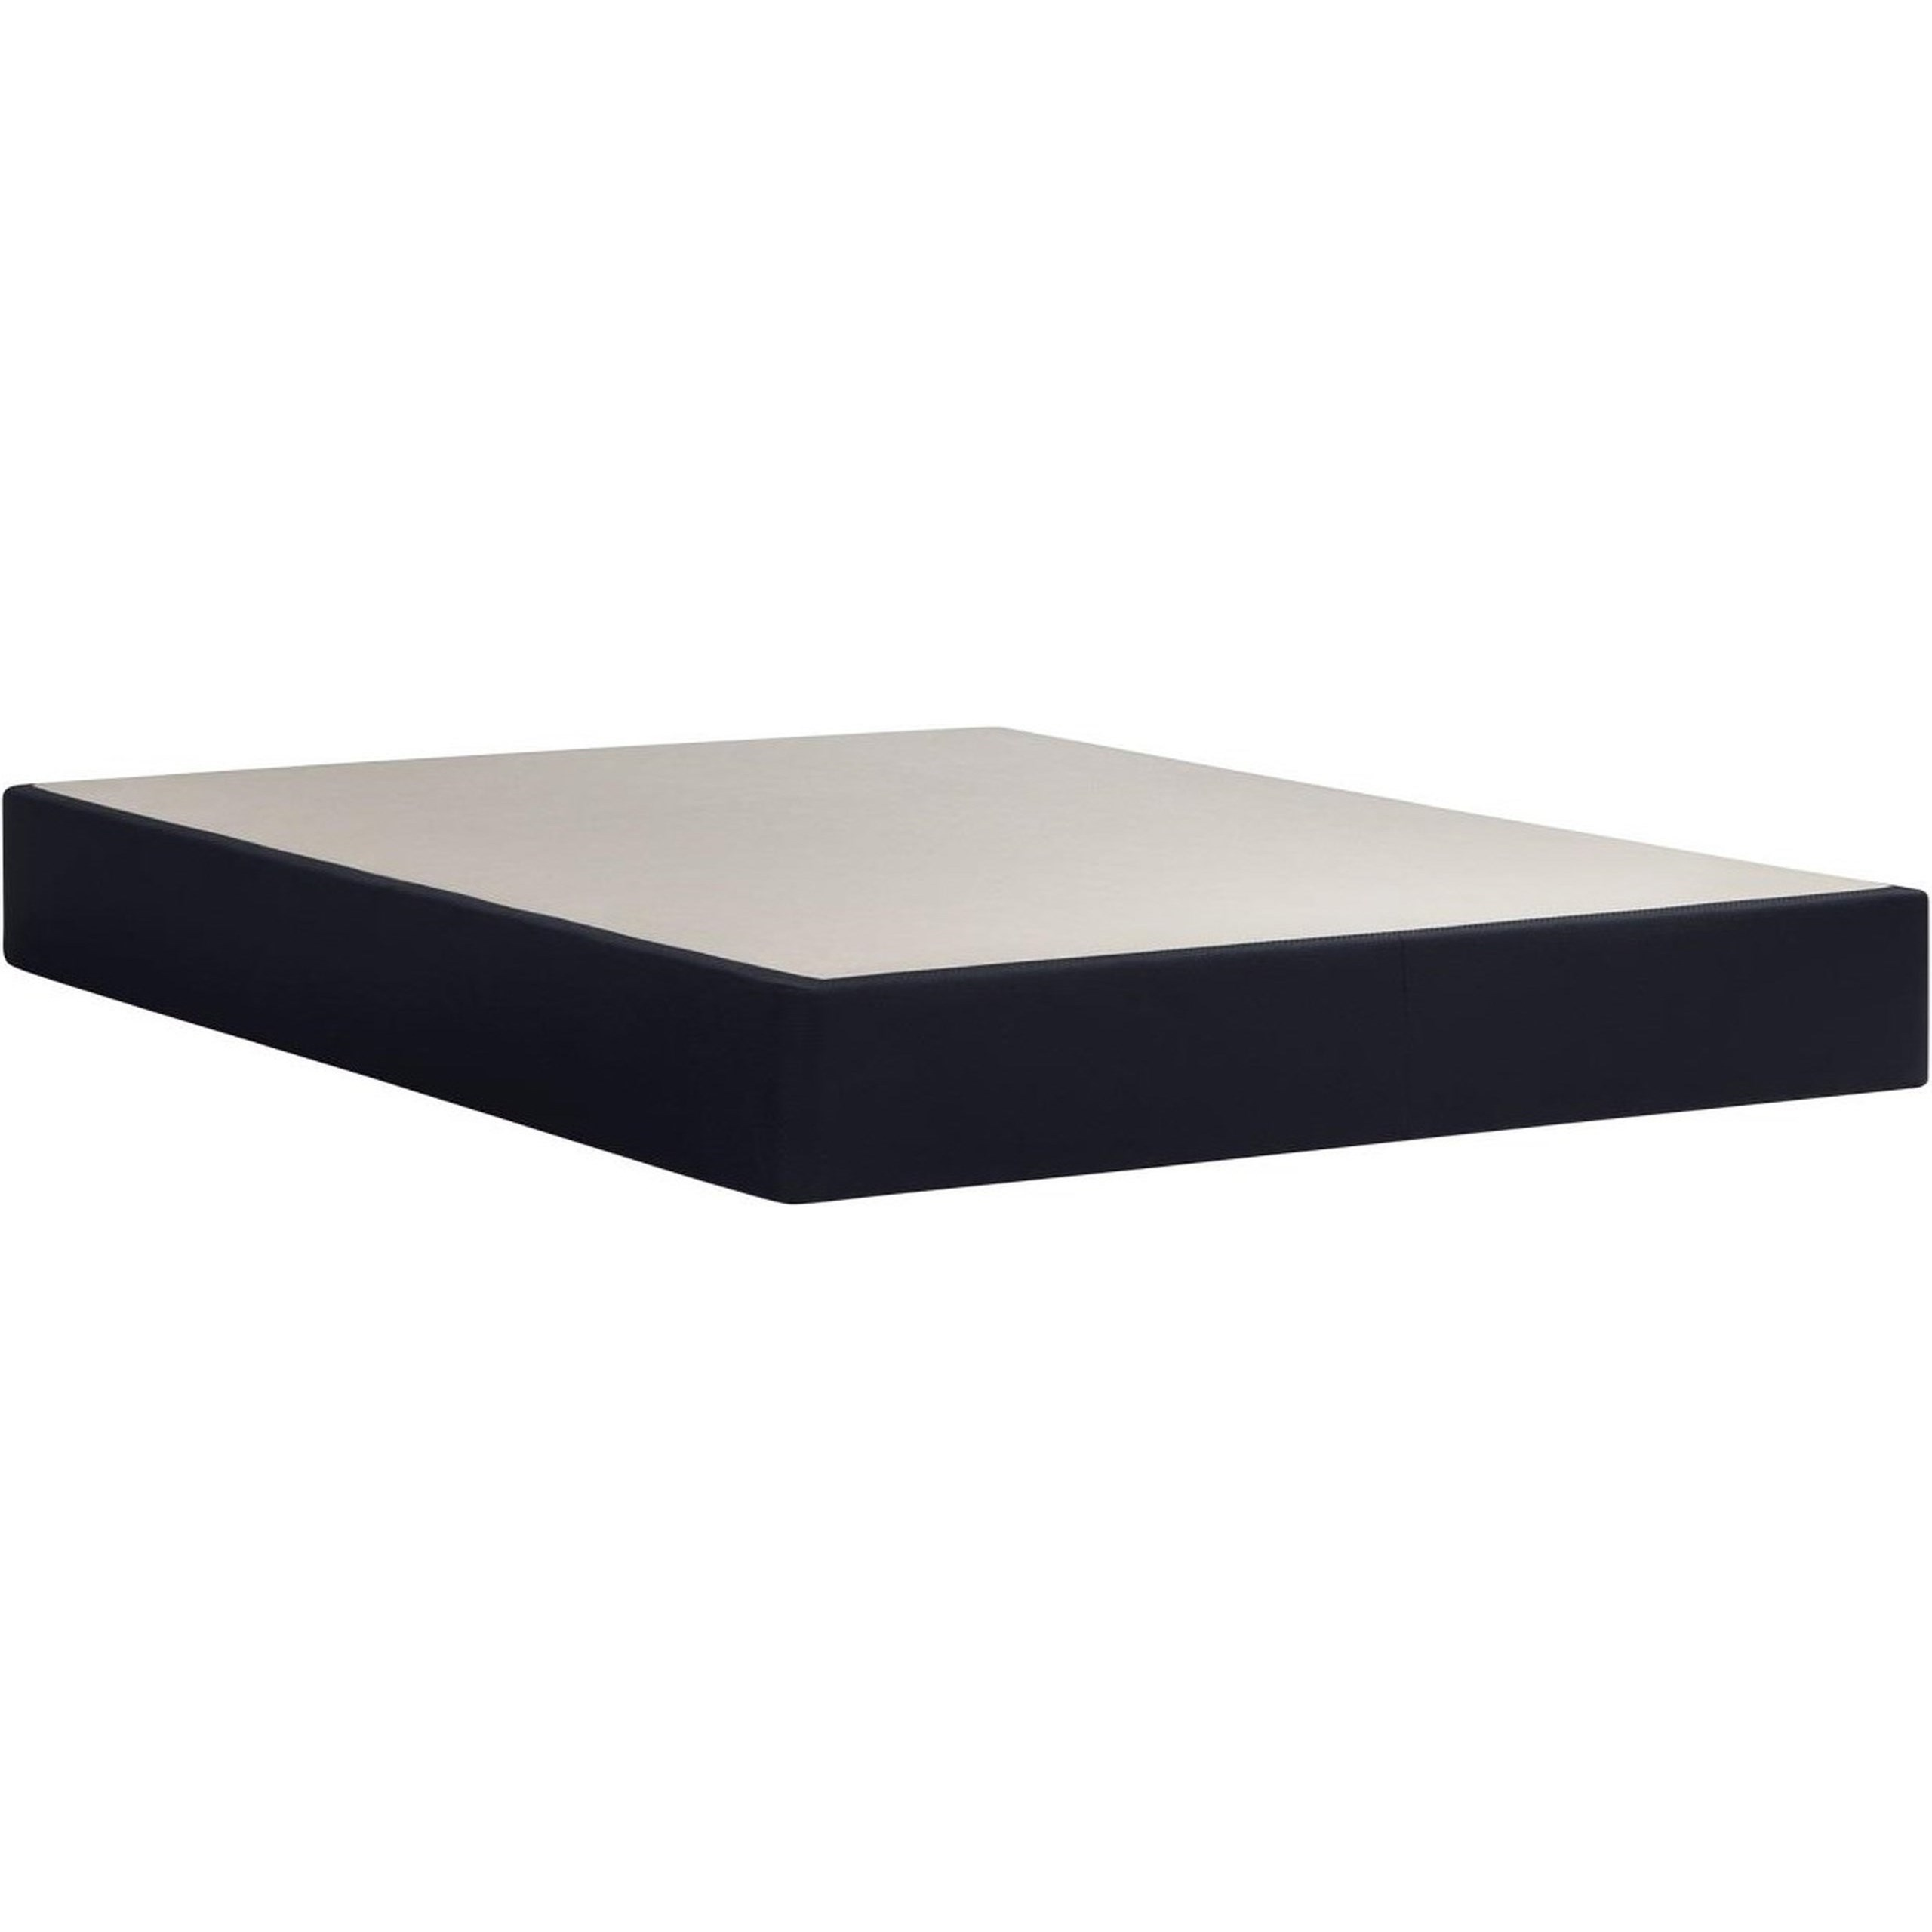 "2019 Stearns and Foster Foundations Queen Standard Base 9"" Height by Stearns & Foster at Sadler's Home Furnishings"